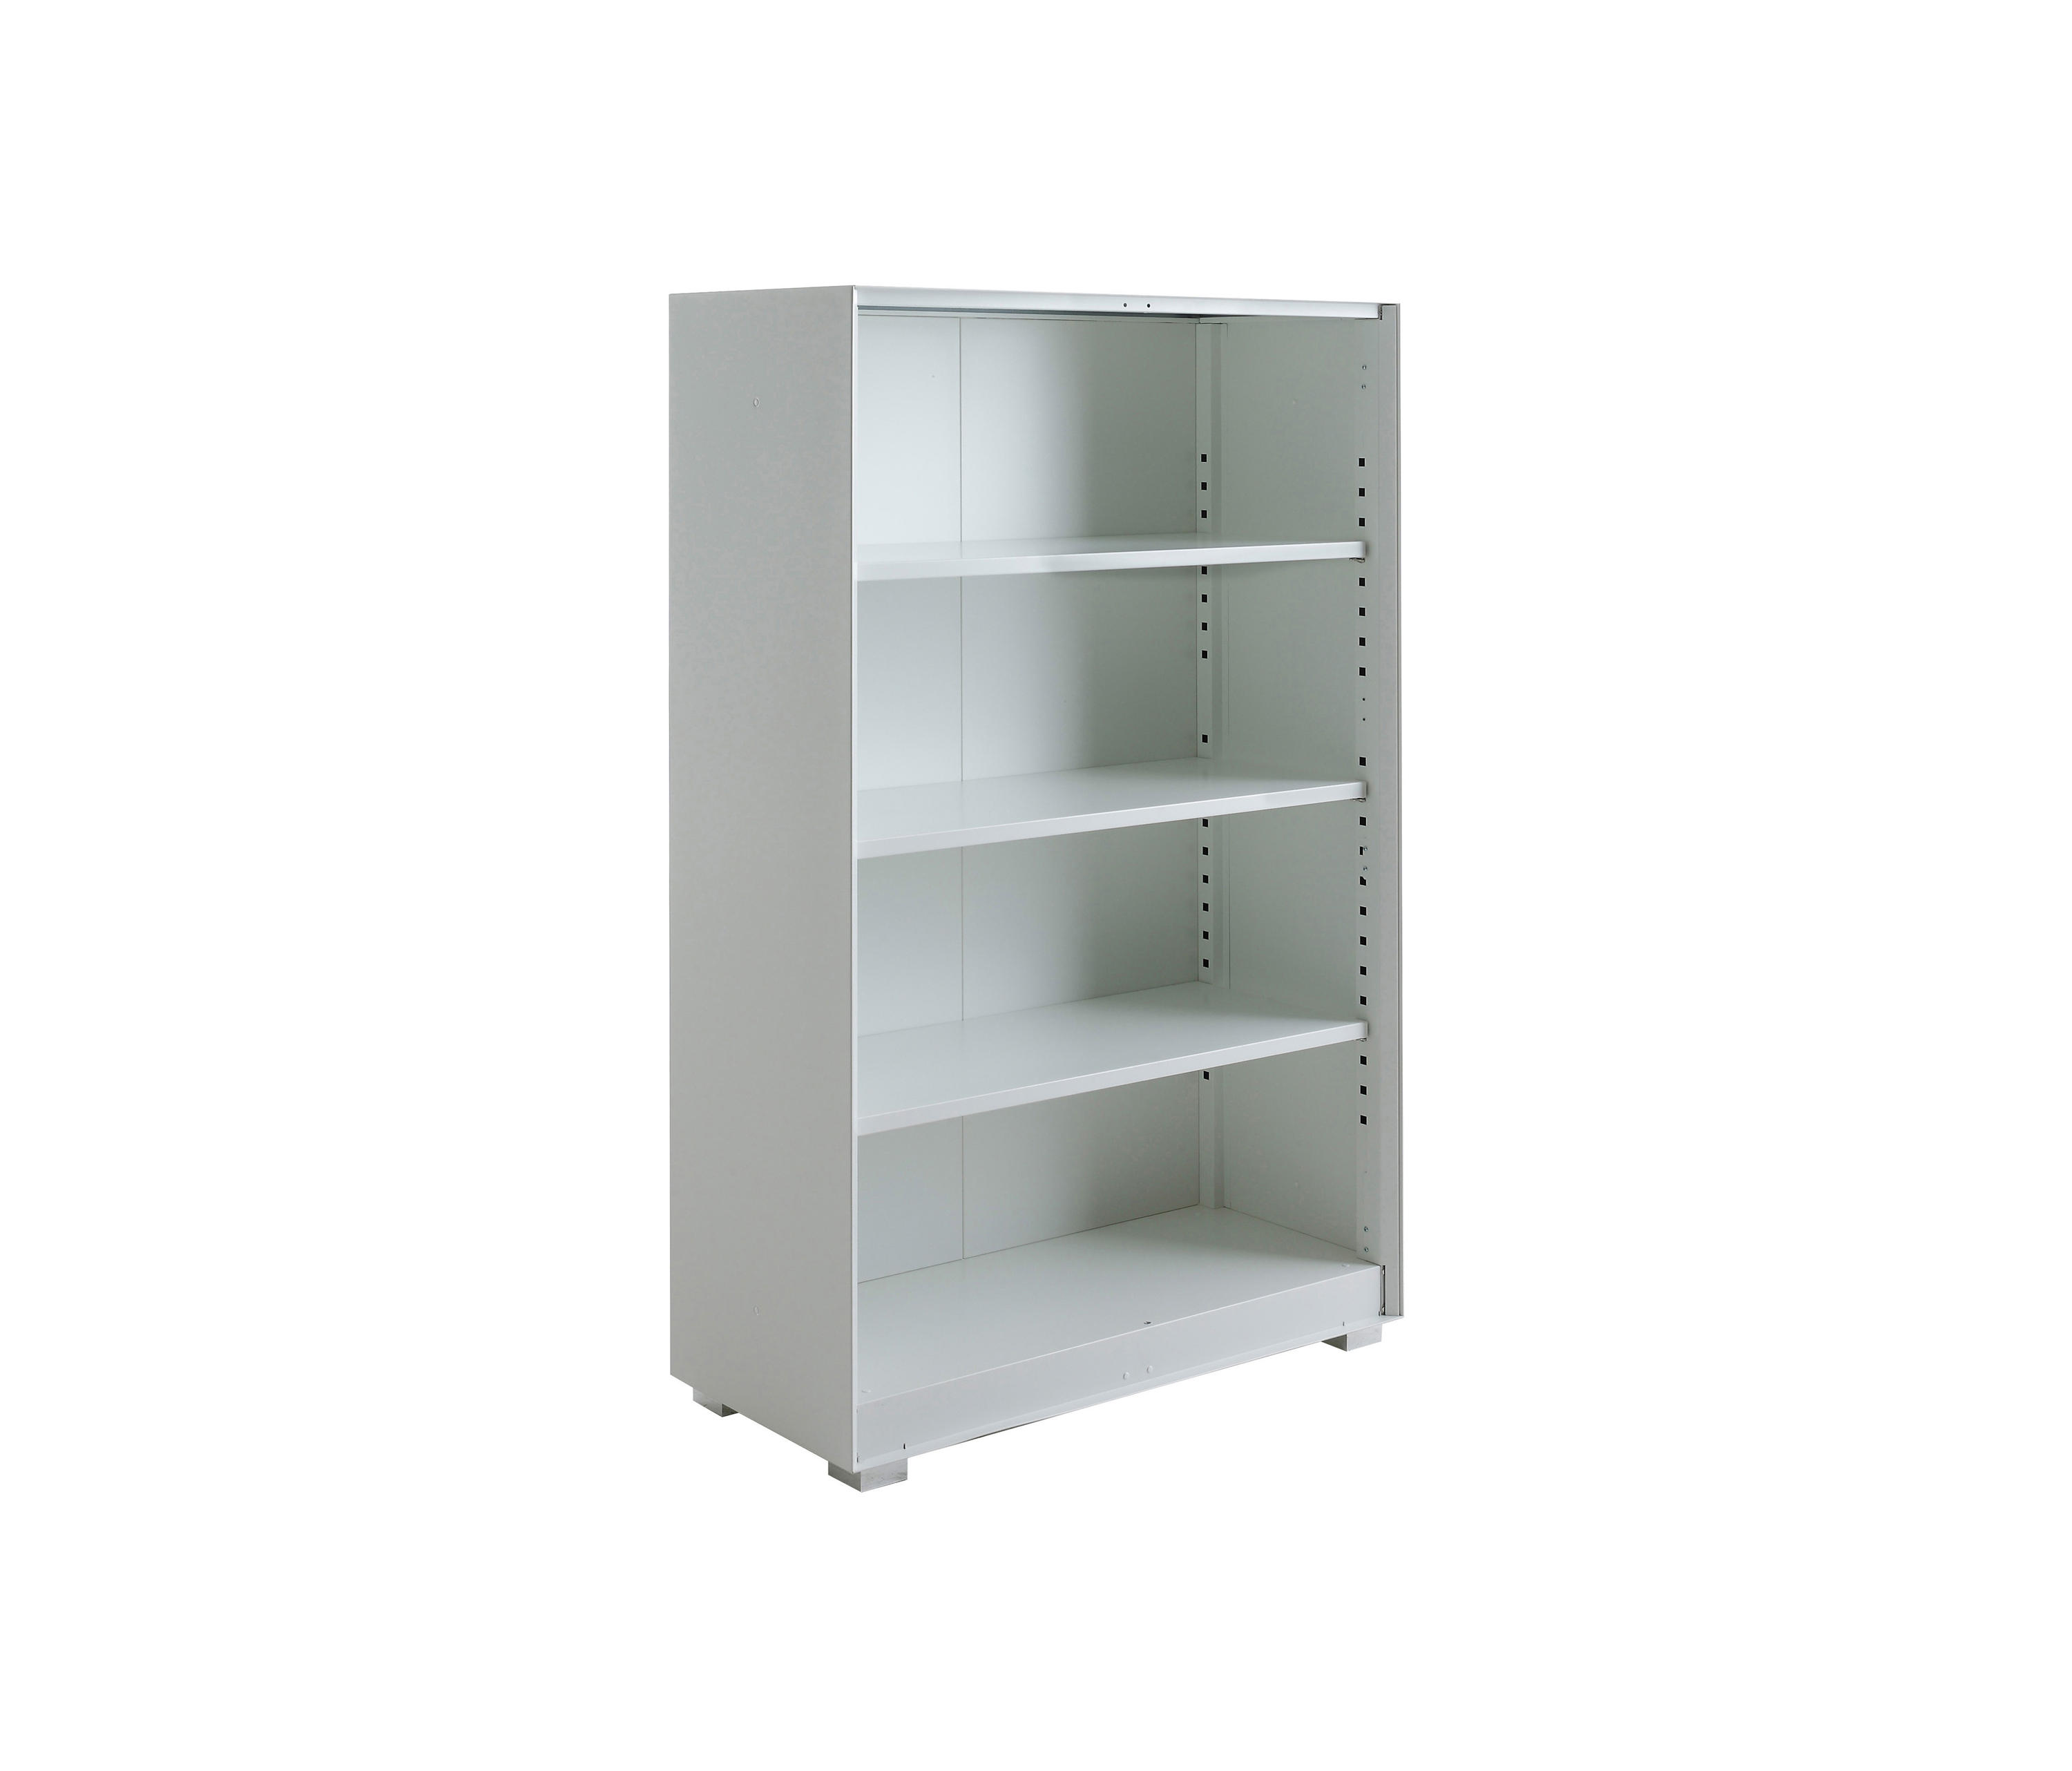 primo 1000 open cabinets h1650 office shelving systems